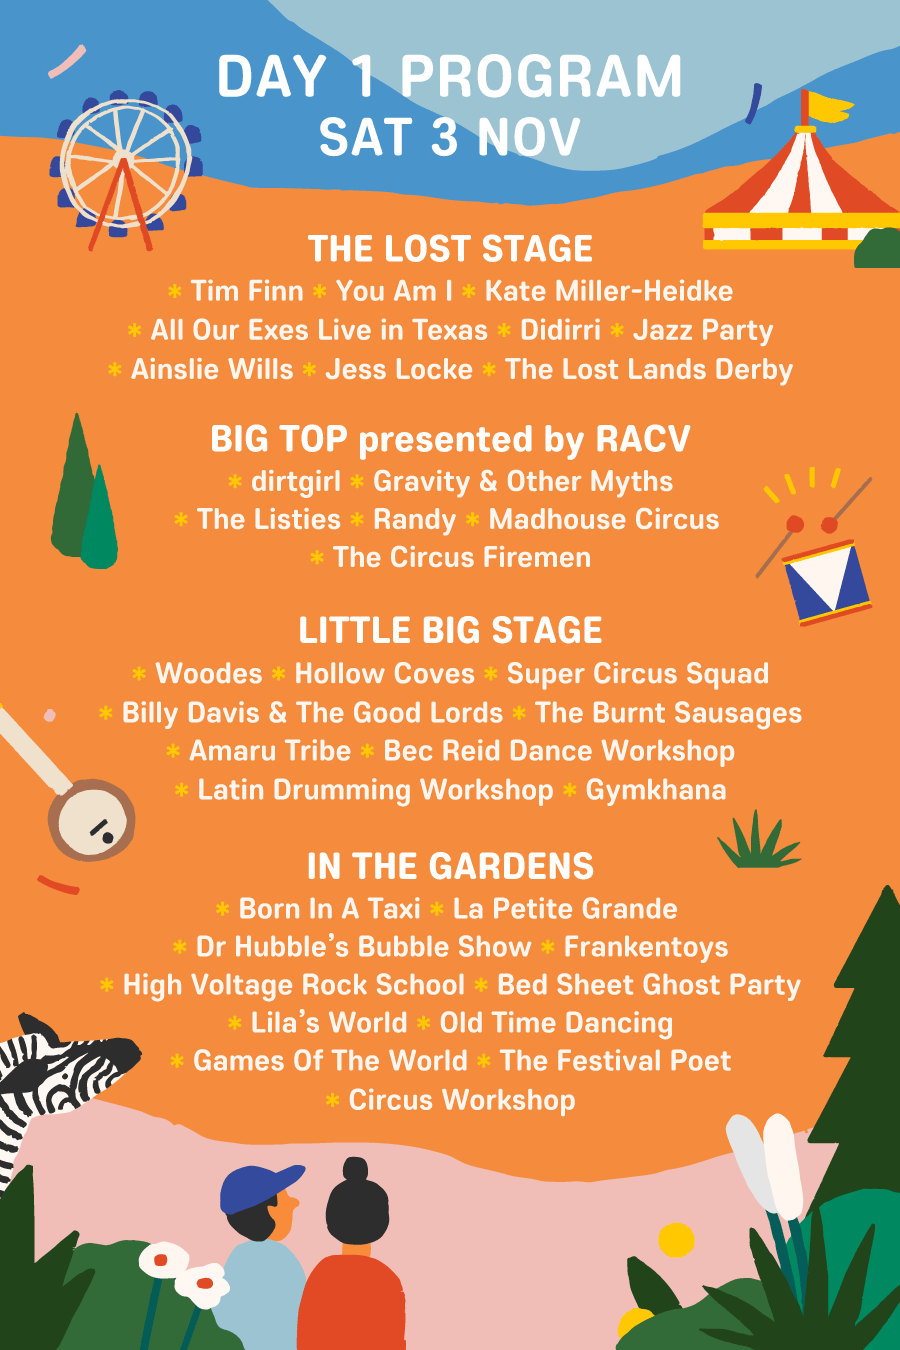 Day 1 Program - The Lost Lands